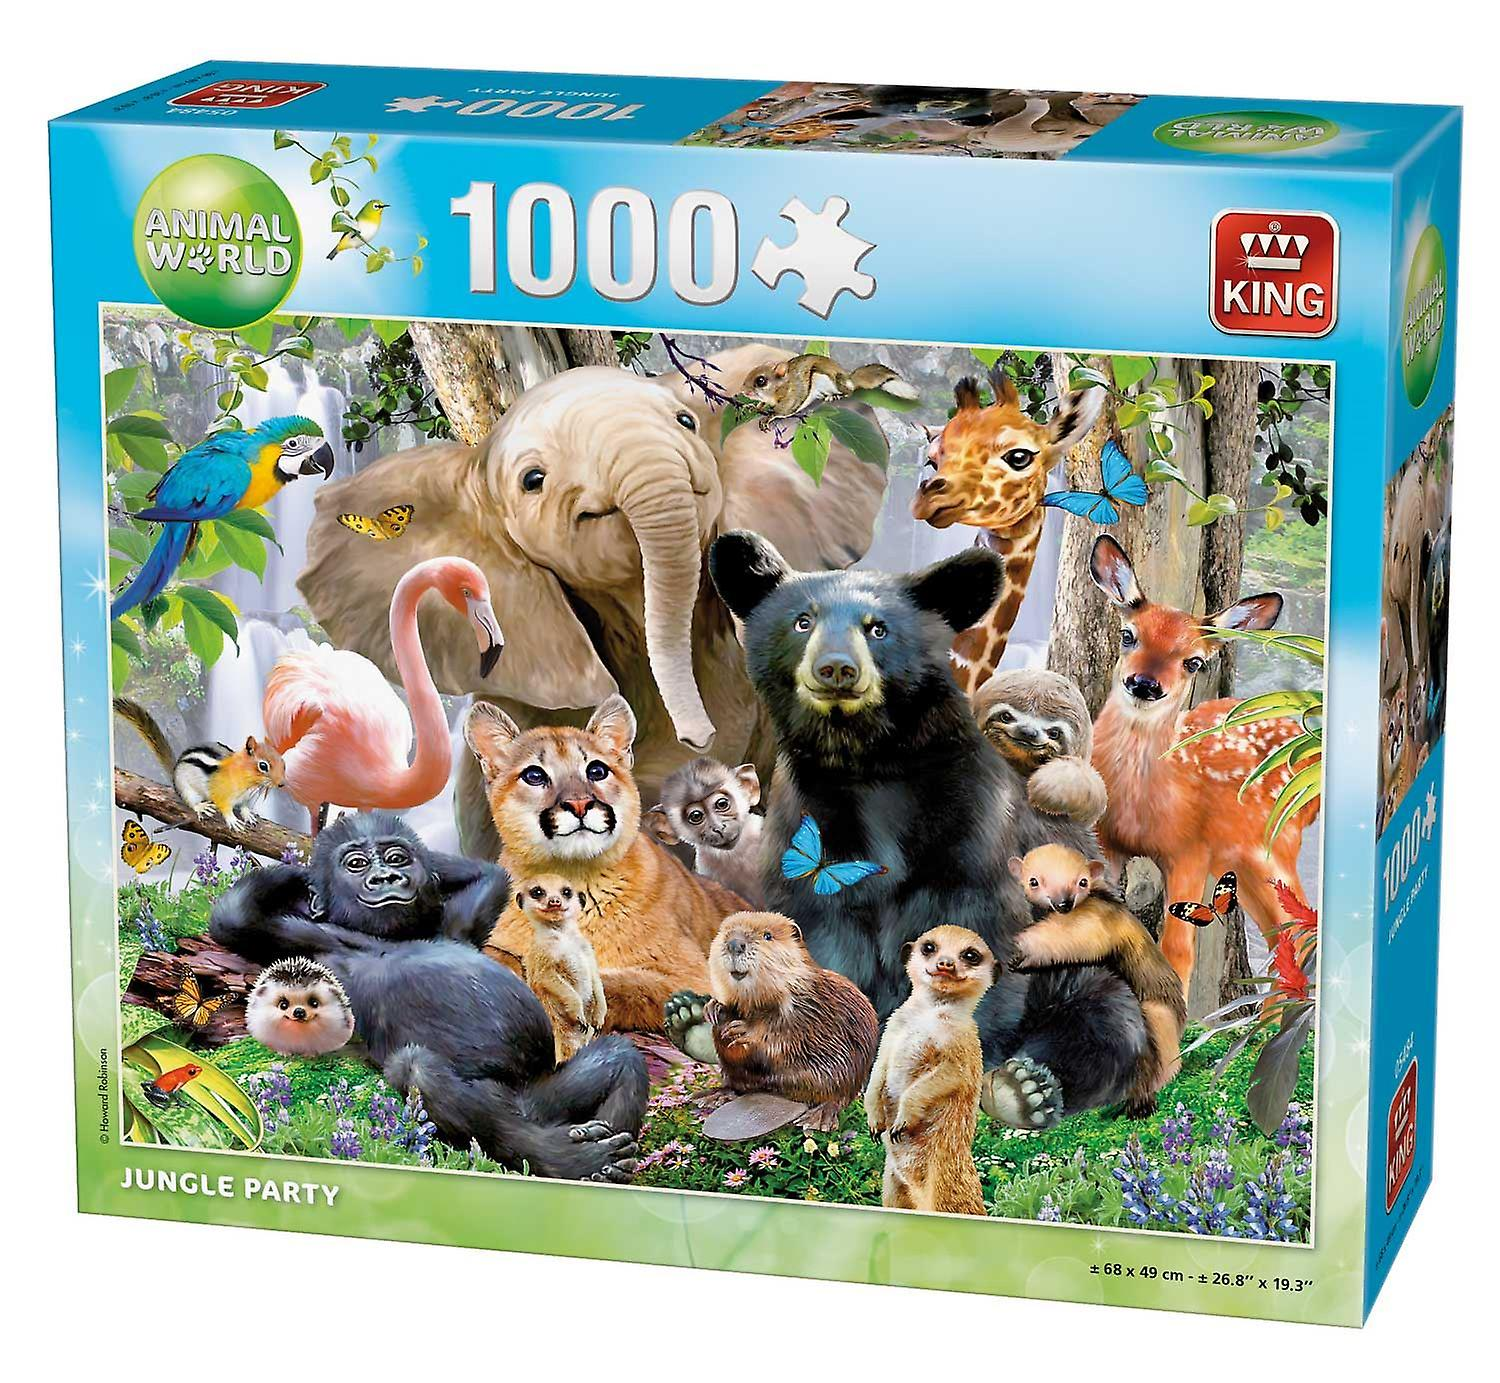 King Jungle Party Jigsaw Puzzle (1000 Pieces)